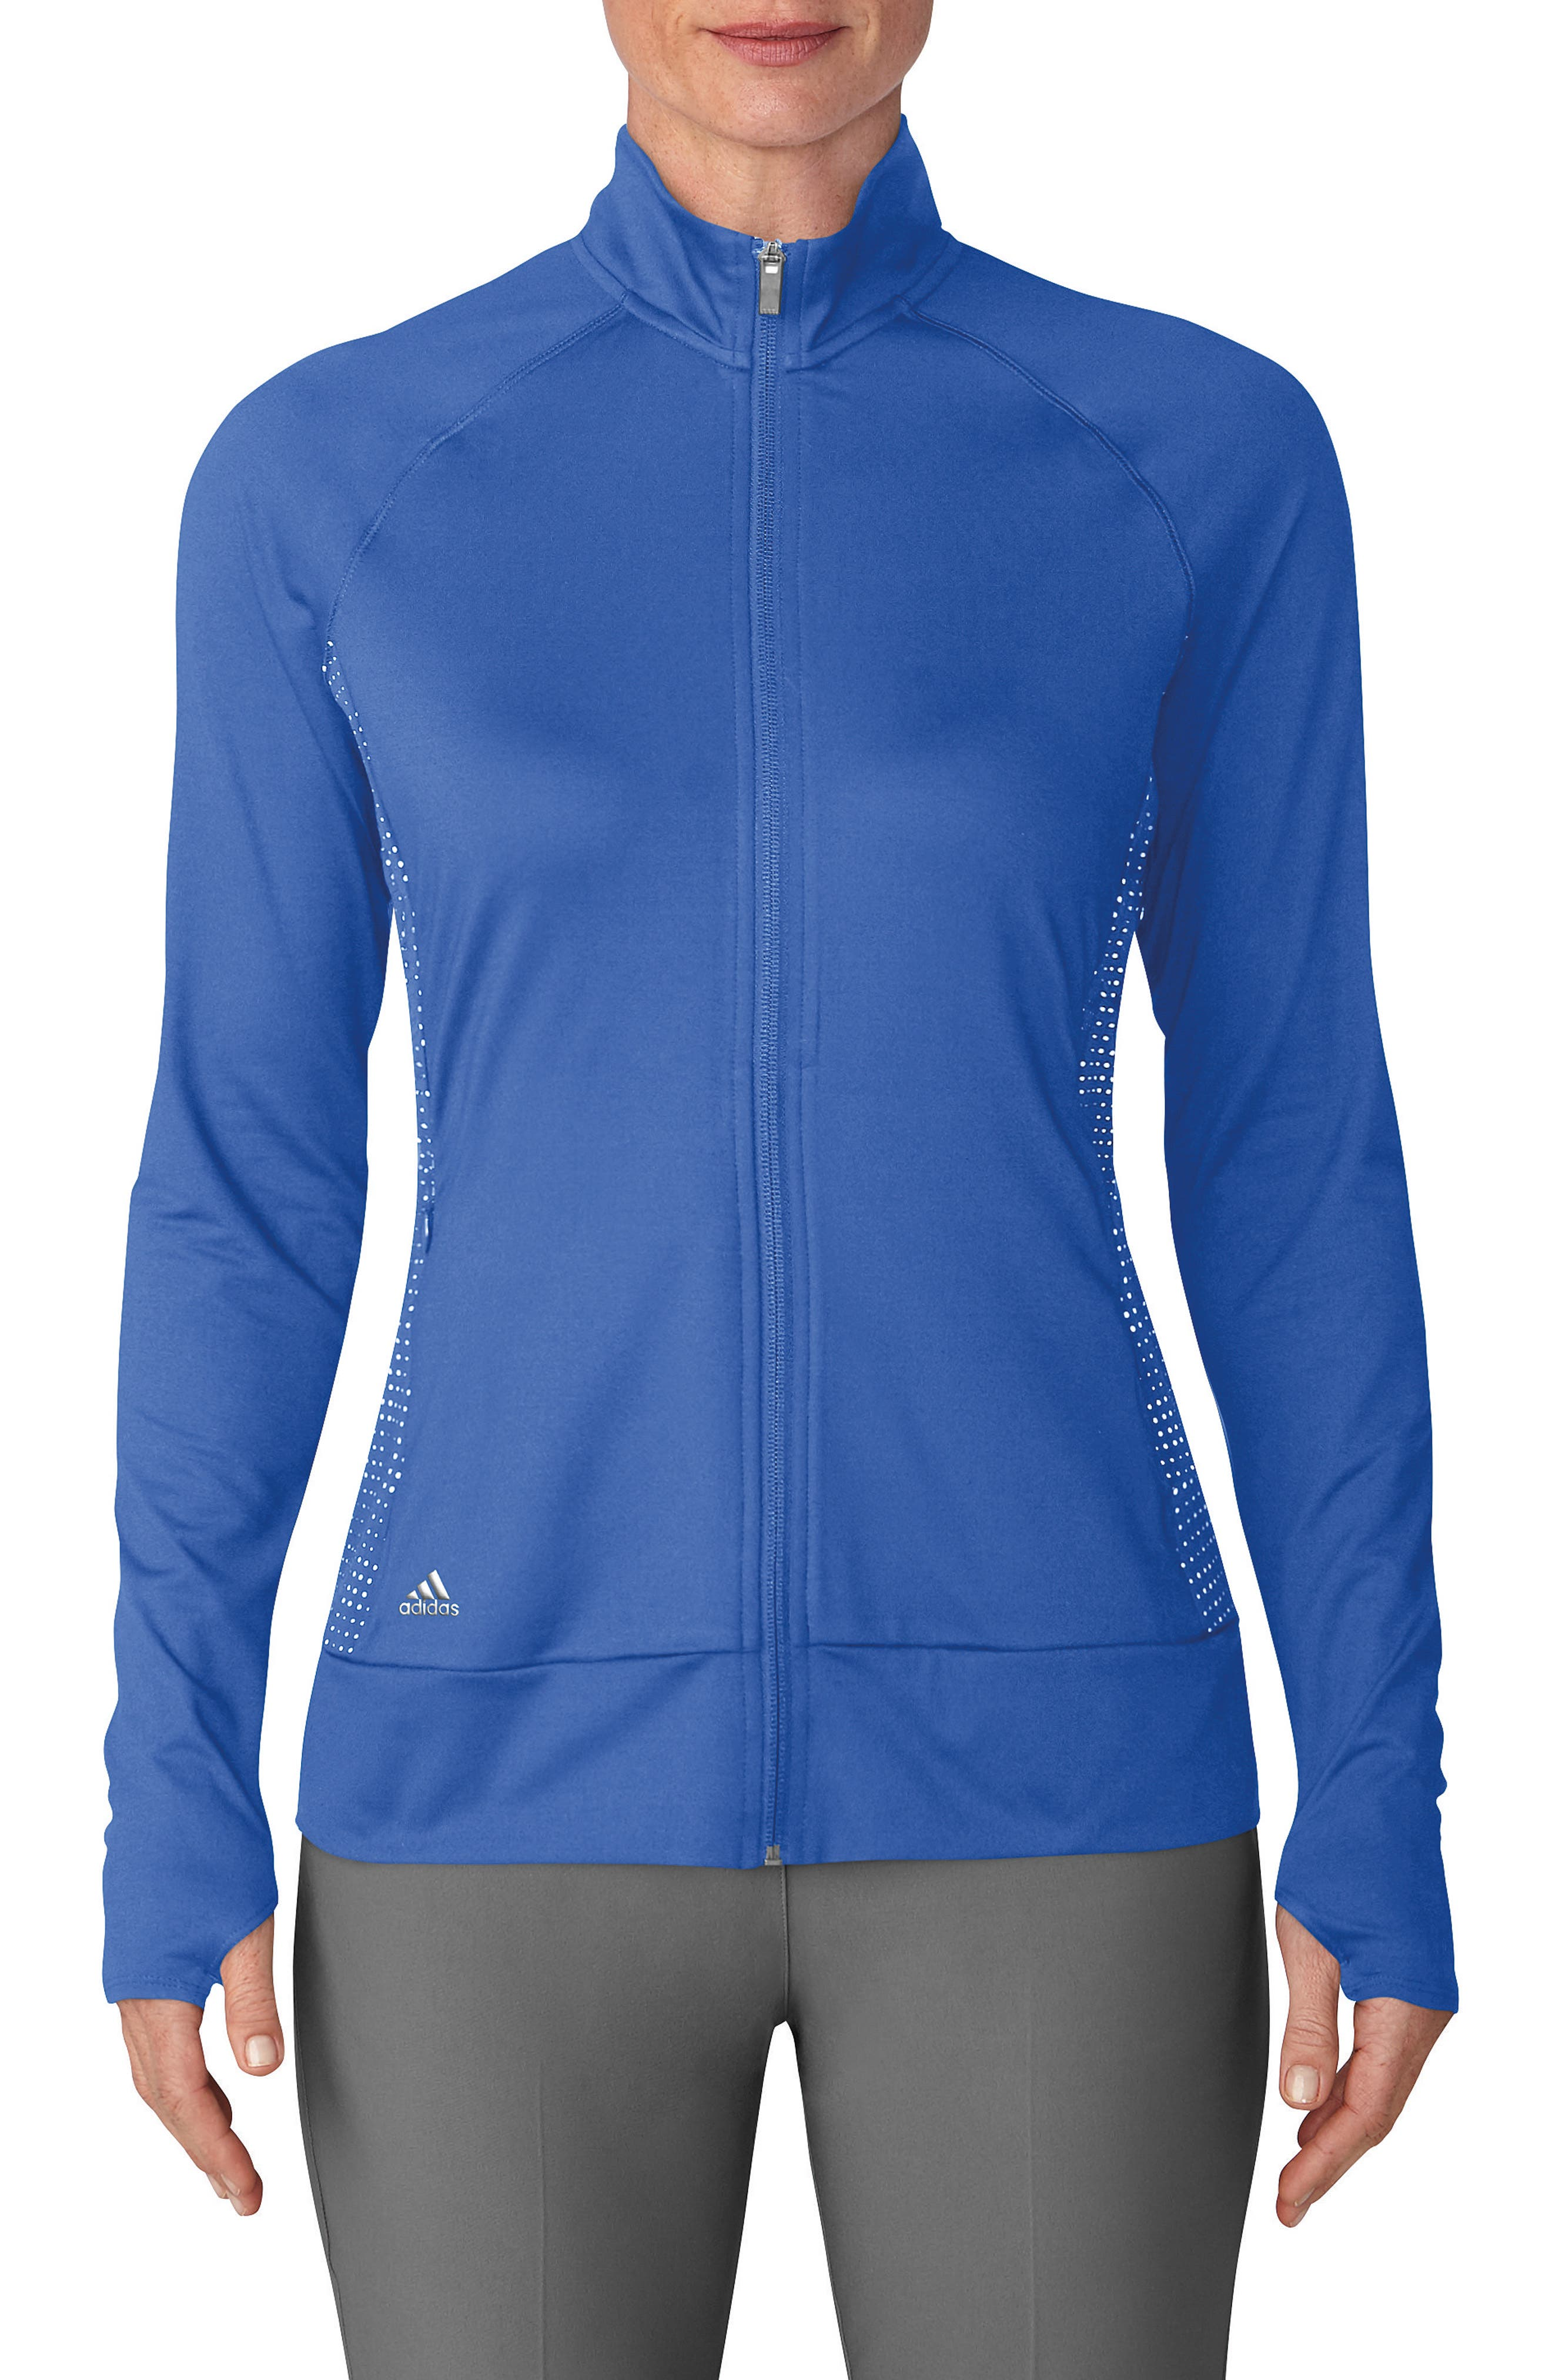 Rangewear Jacket,                             Main thumbnail 1, color,                             423